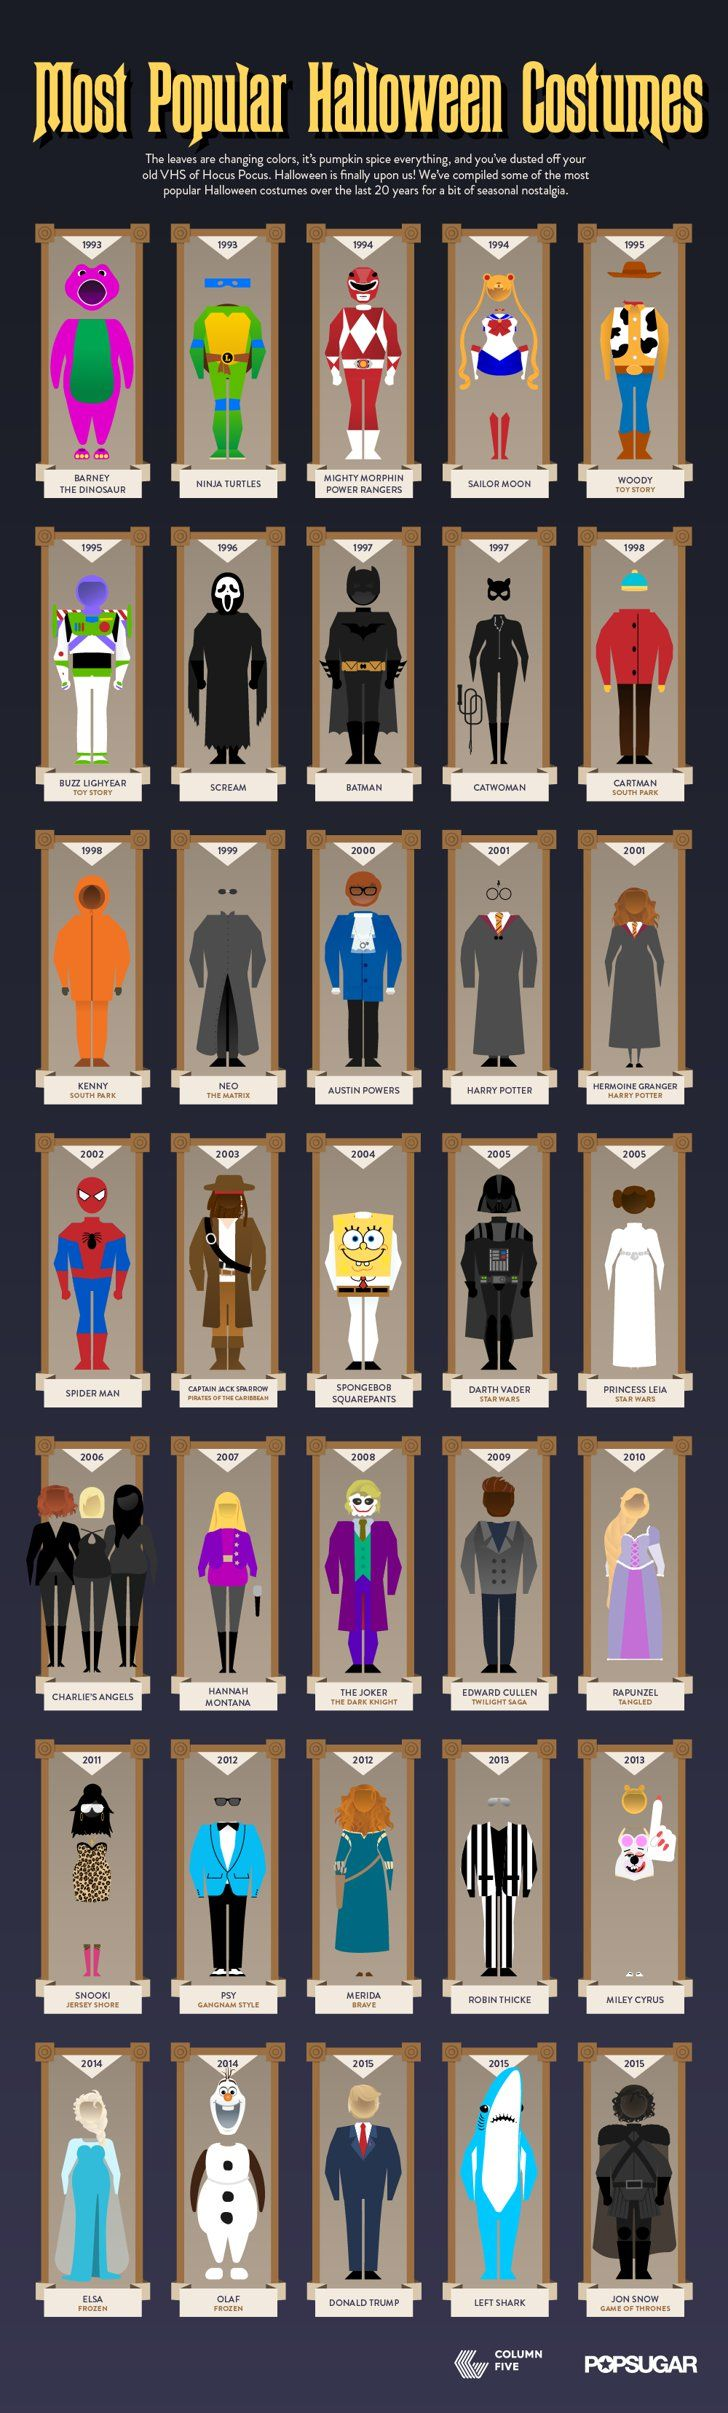 See the 28 Most Popular Halloween Costumes by Year in This Cool Infographic